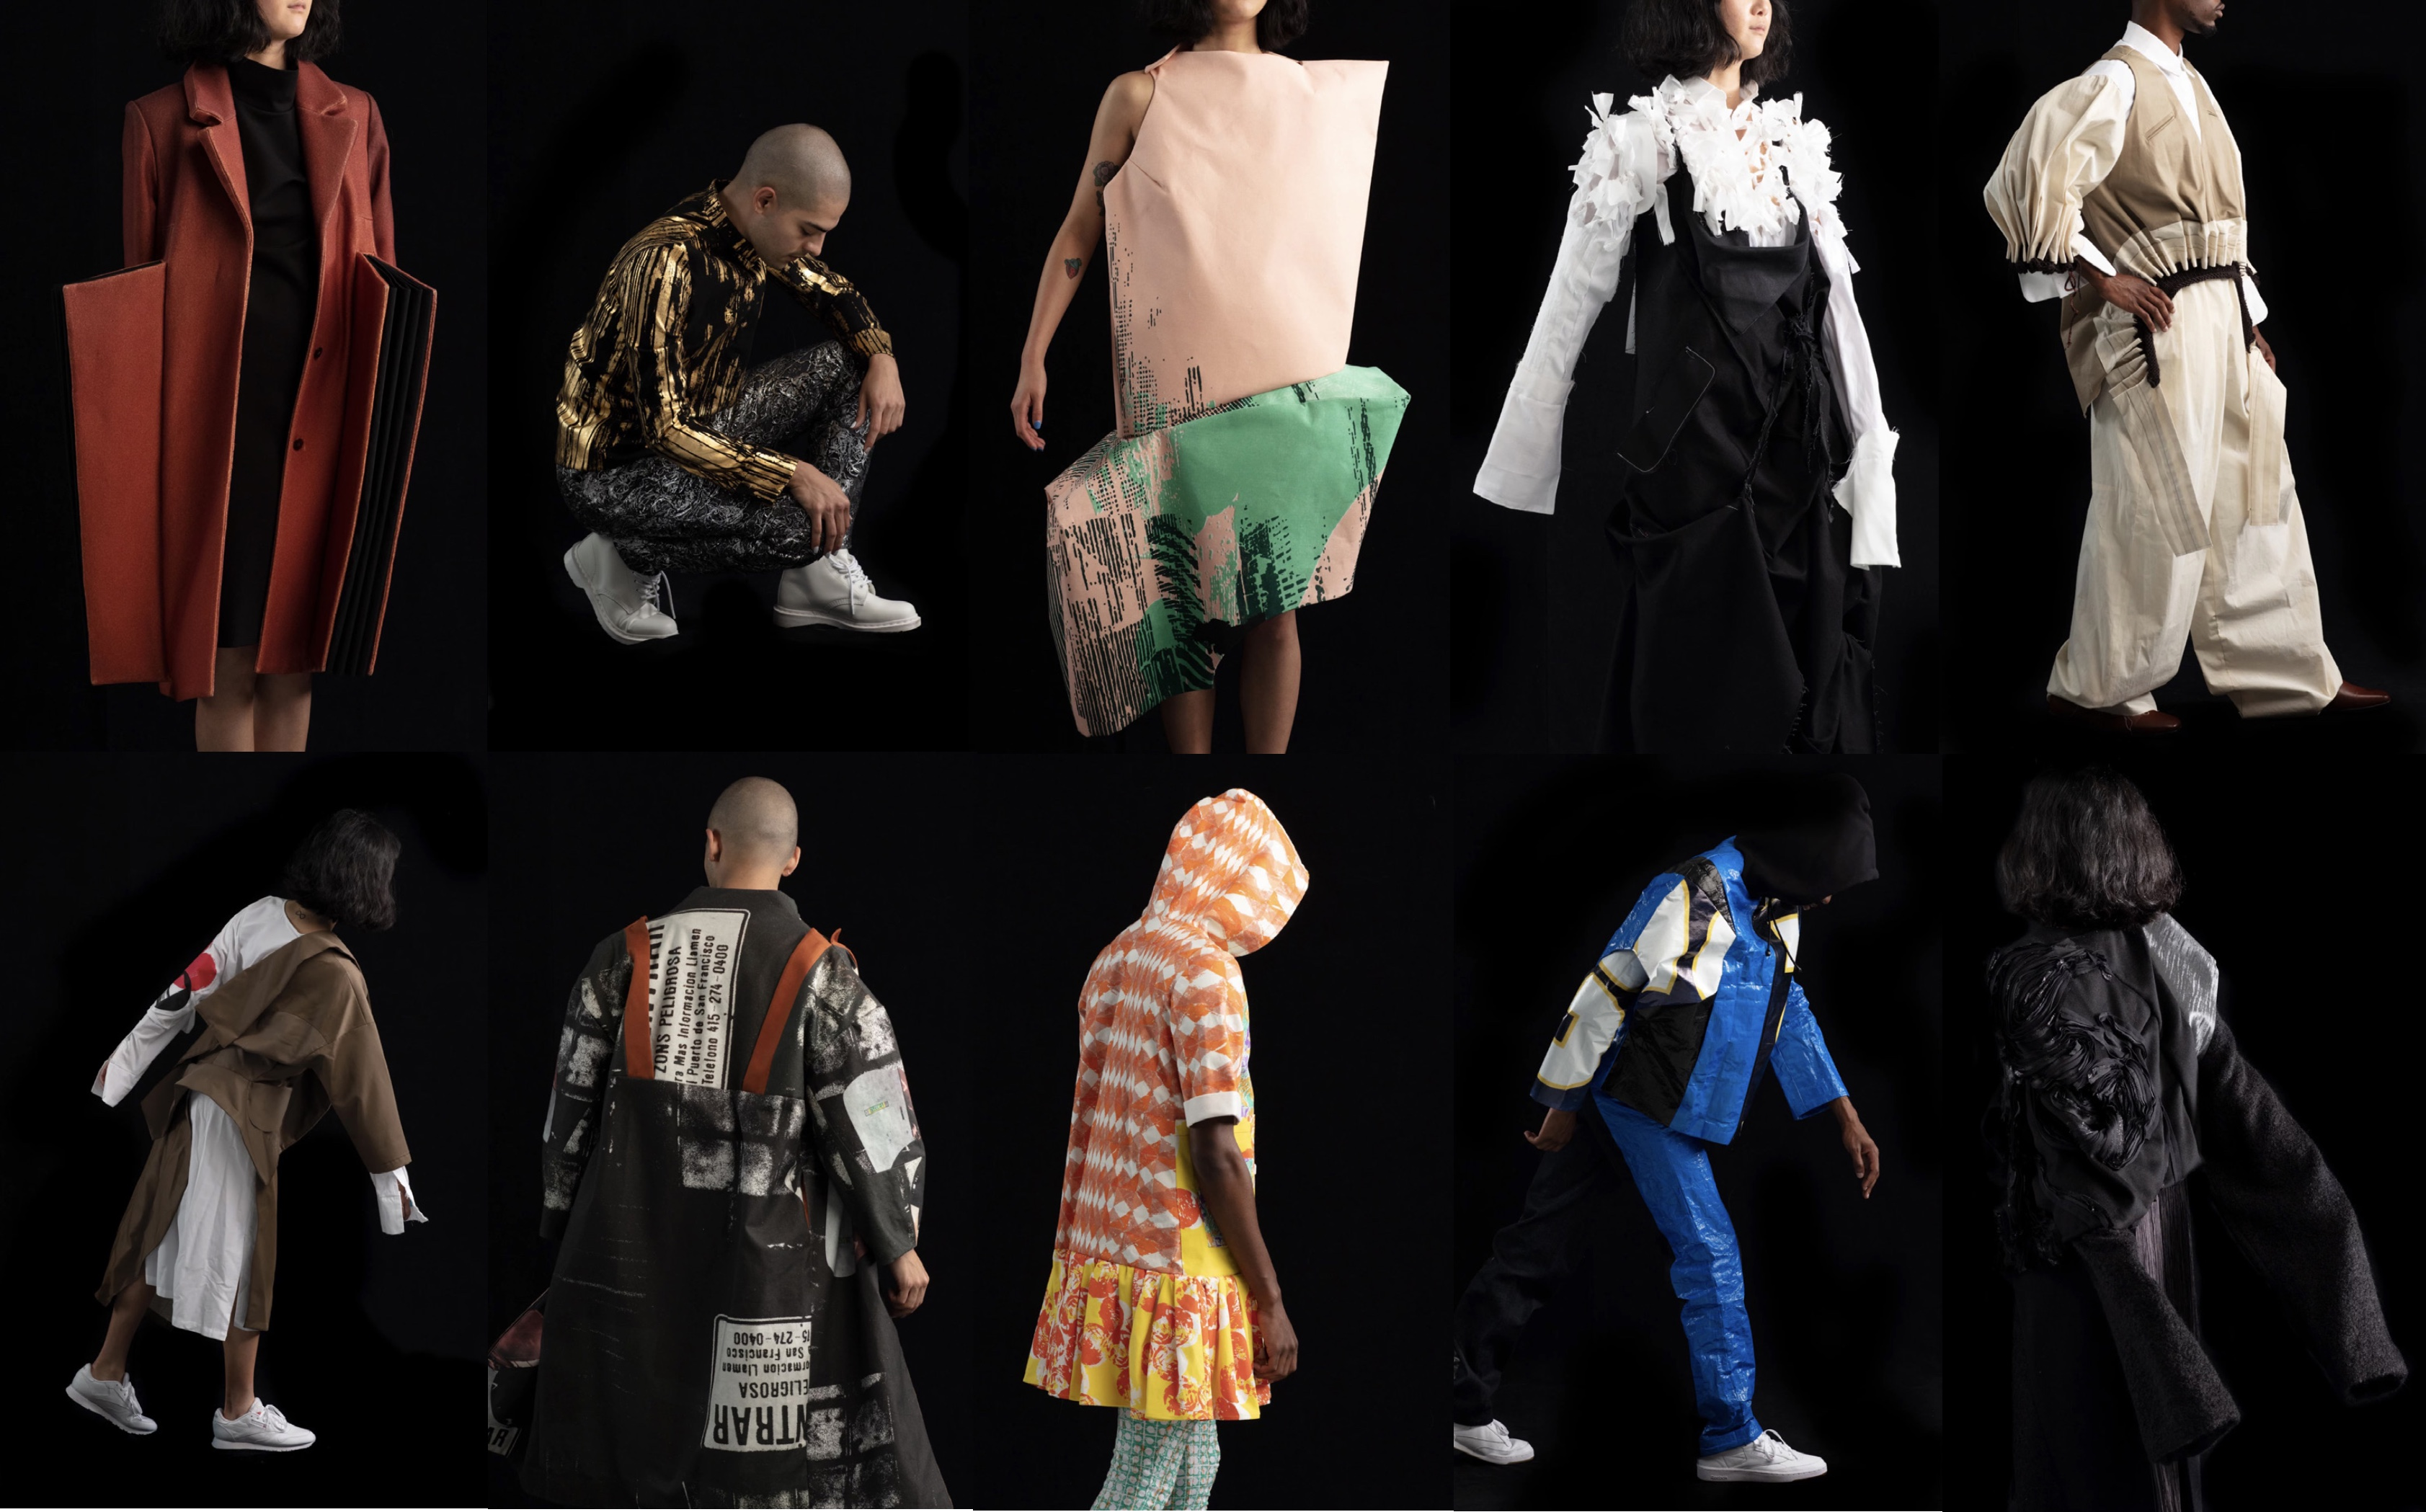 The Council Of Fashion Designers Of America Cfda Selects 12 Academy Of Art University Graduates For The Annual Fashion Future Graduate Showcase To Be Presented During New York Fashion Week Men S From